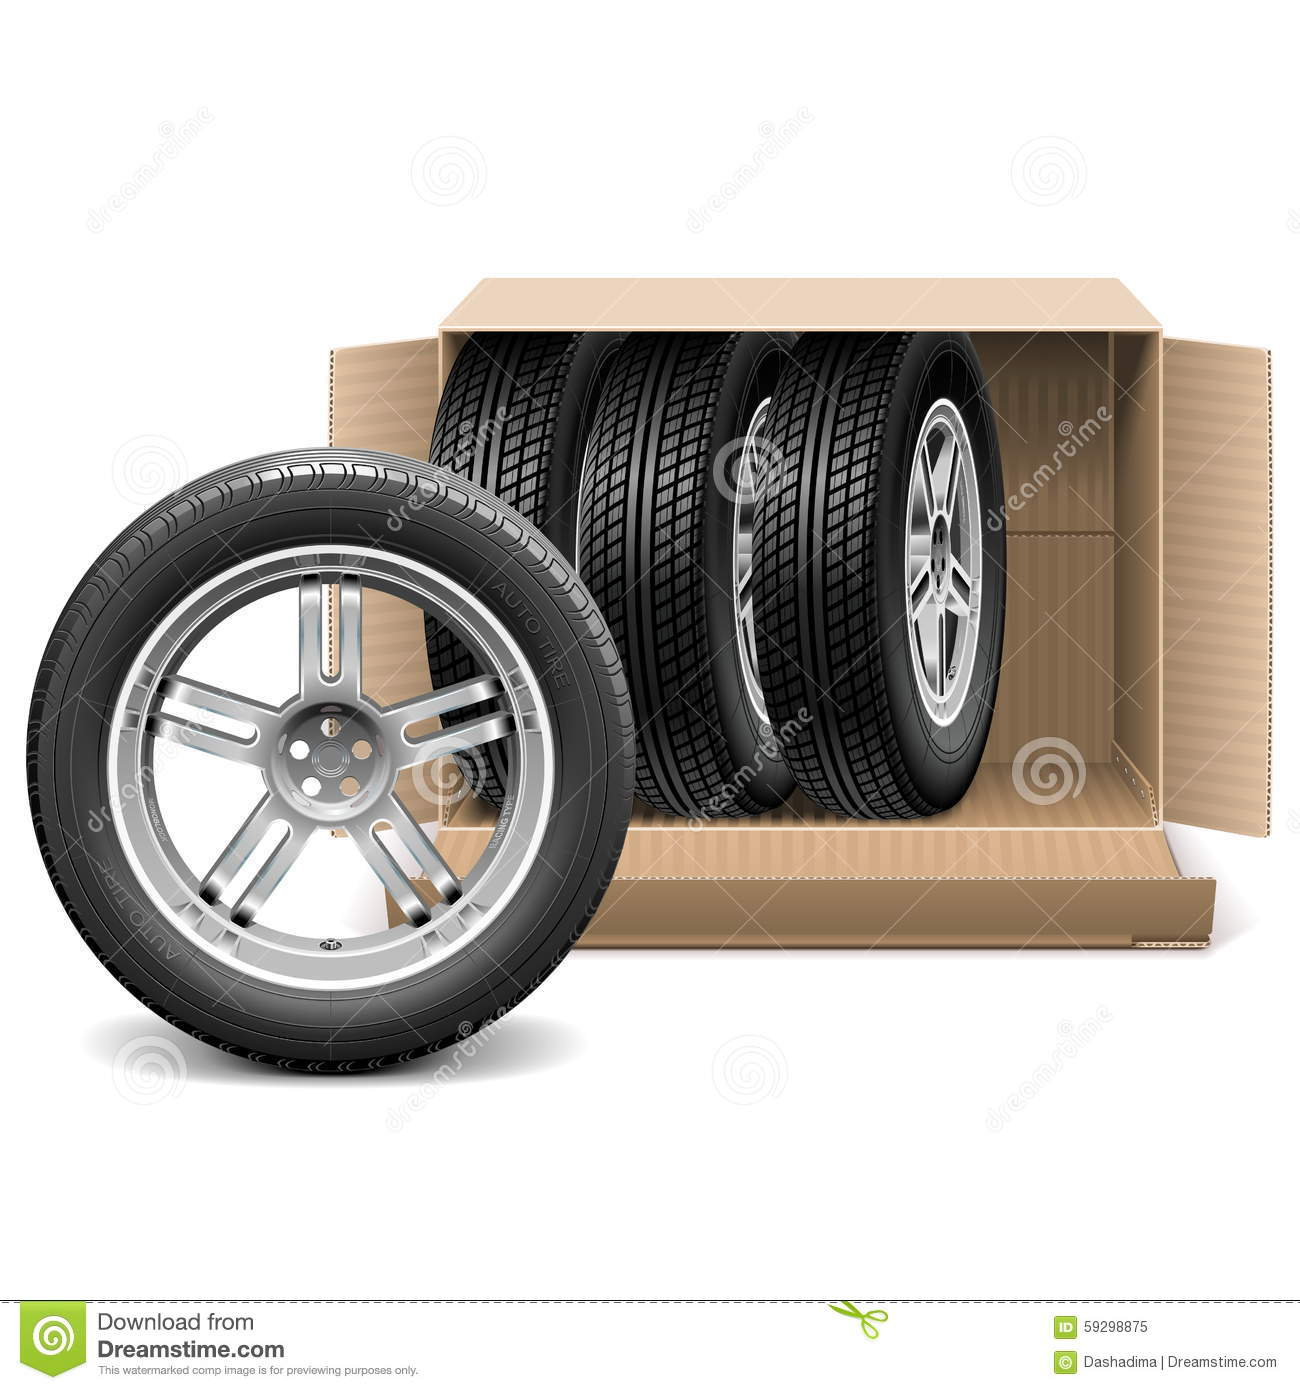 Download Vector Car Wheels In Carton Box Stock Vector - Illustration of inside, packaging: 59298875